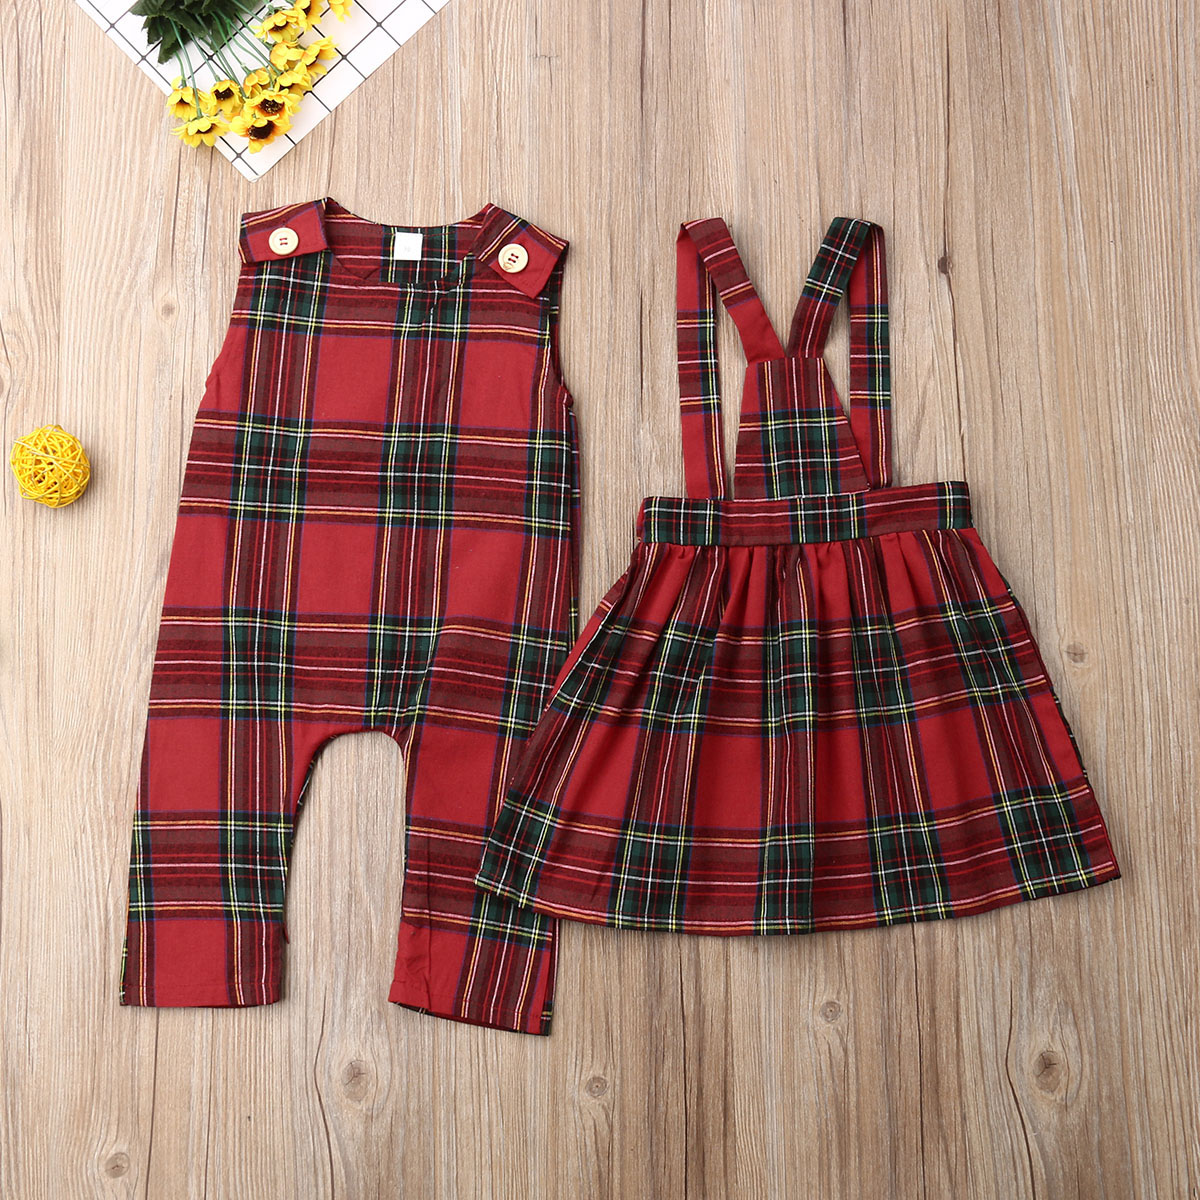 Christmas Sister Match Xmas Clothes Sleeveless Romper Strap Dress Skirts Baby Boys Girls Plaid Party Pageant Outfit 0-5Y